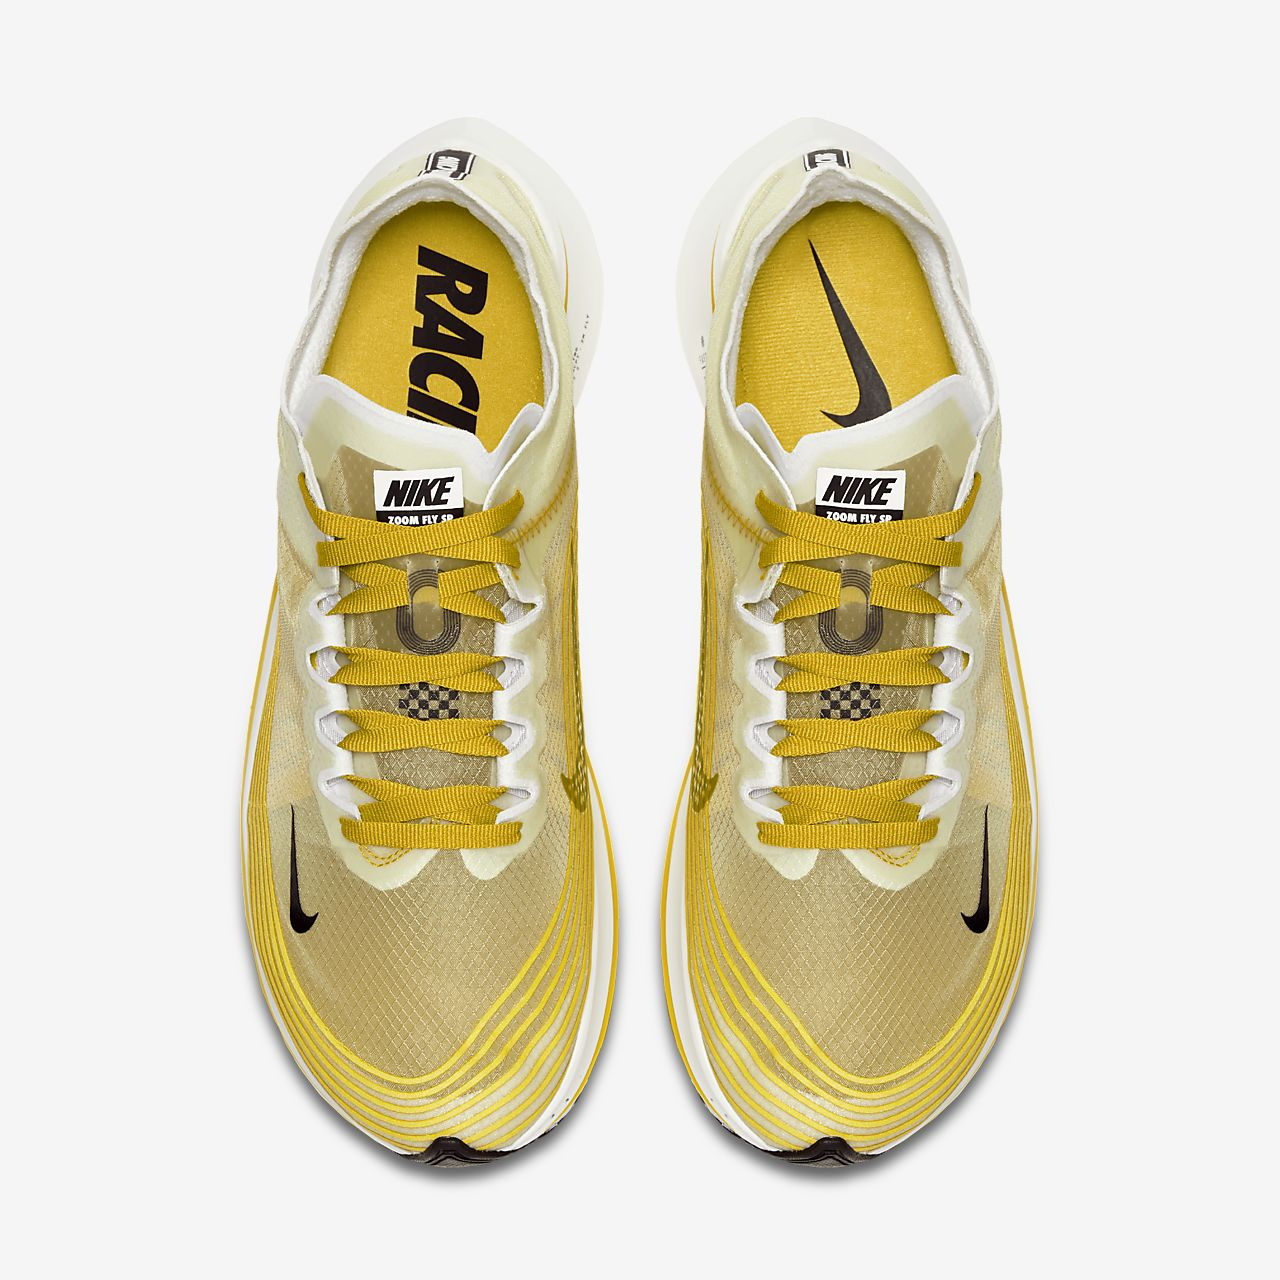 12bed81d451f4 Nike Zoom Fly SP Dark Citron Yellow White Men Running Shoes Sneakers AJ9282- 300 Men s Shoes